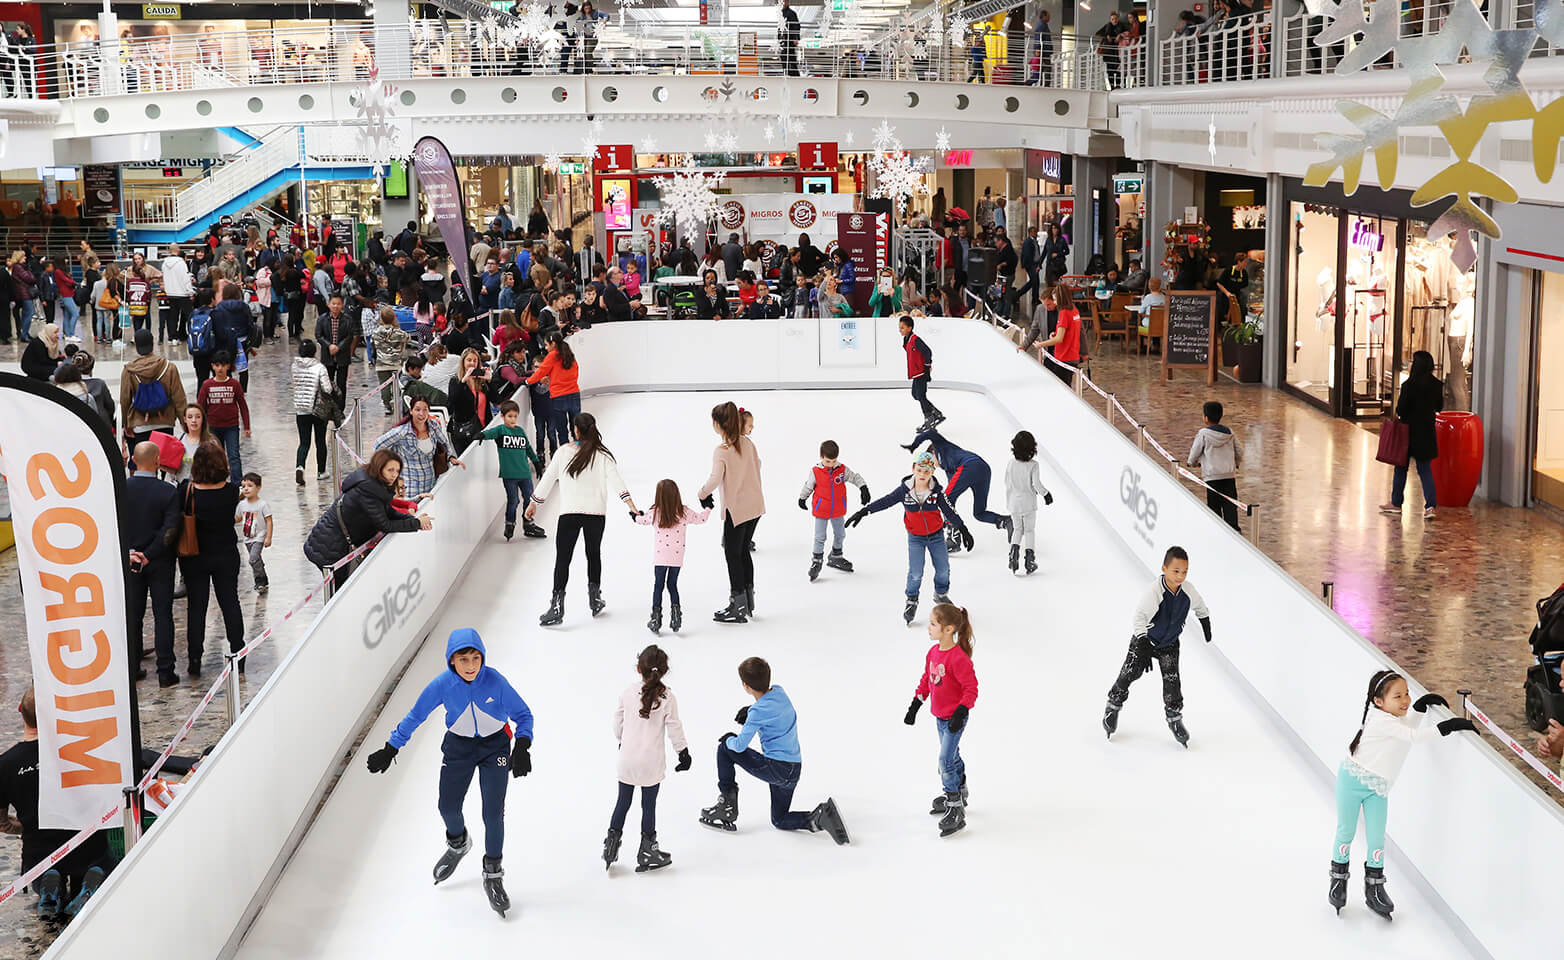 Leisure synthetic ice rink at prestigious German Grand Hotel Heiligendamm